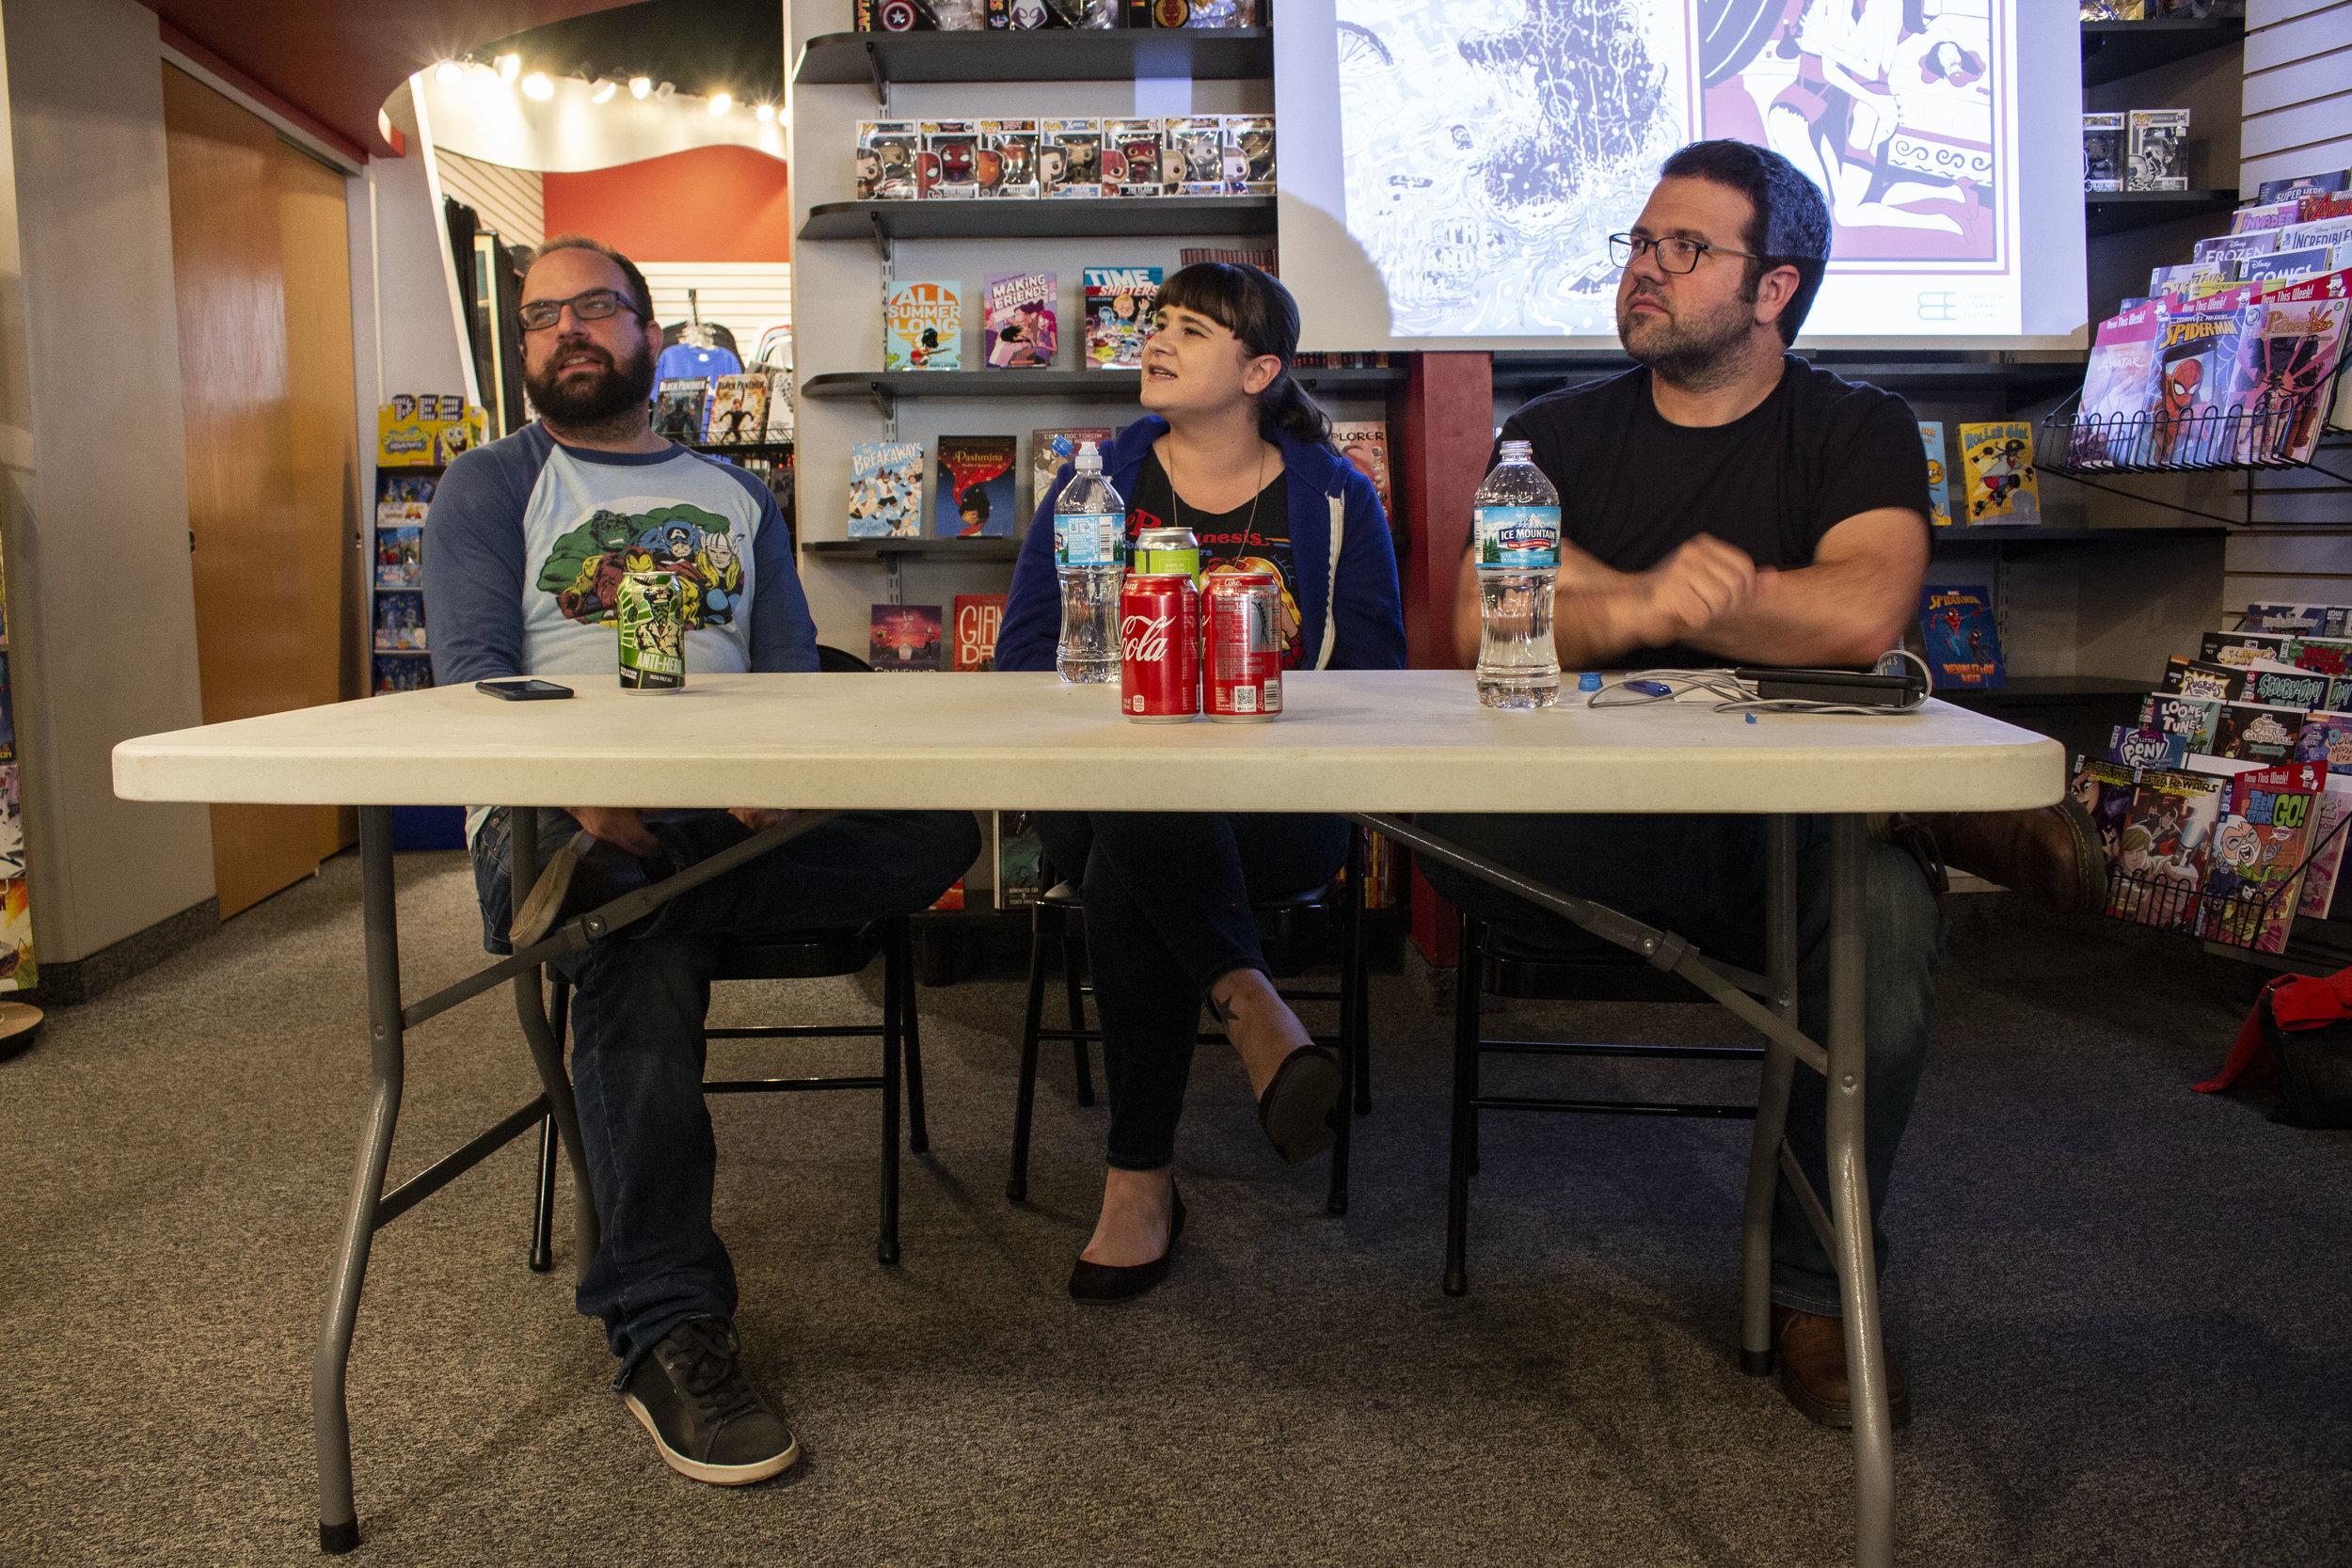 Tim Seeley (Hack/Slash), Corinne Halbert (Cursed Woman), and Dave Kelly (Tales of the Night Watchman) discuss the comics that scare us at Comix Revolution.